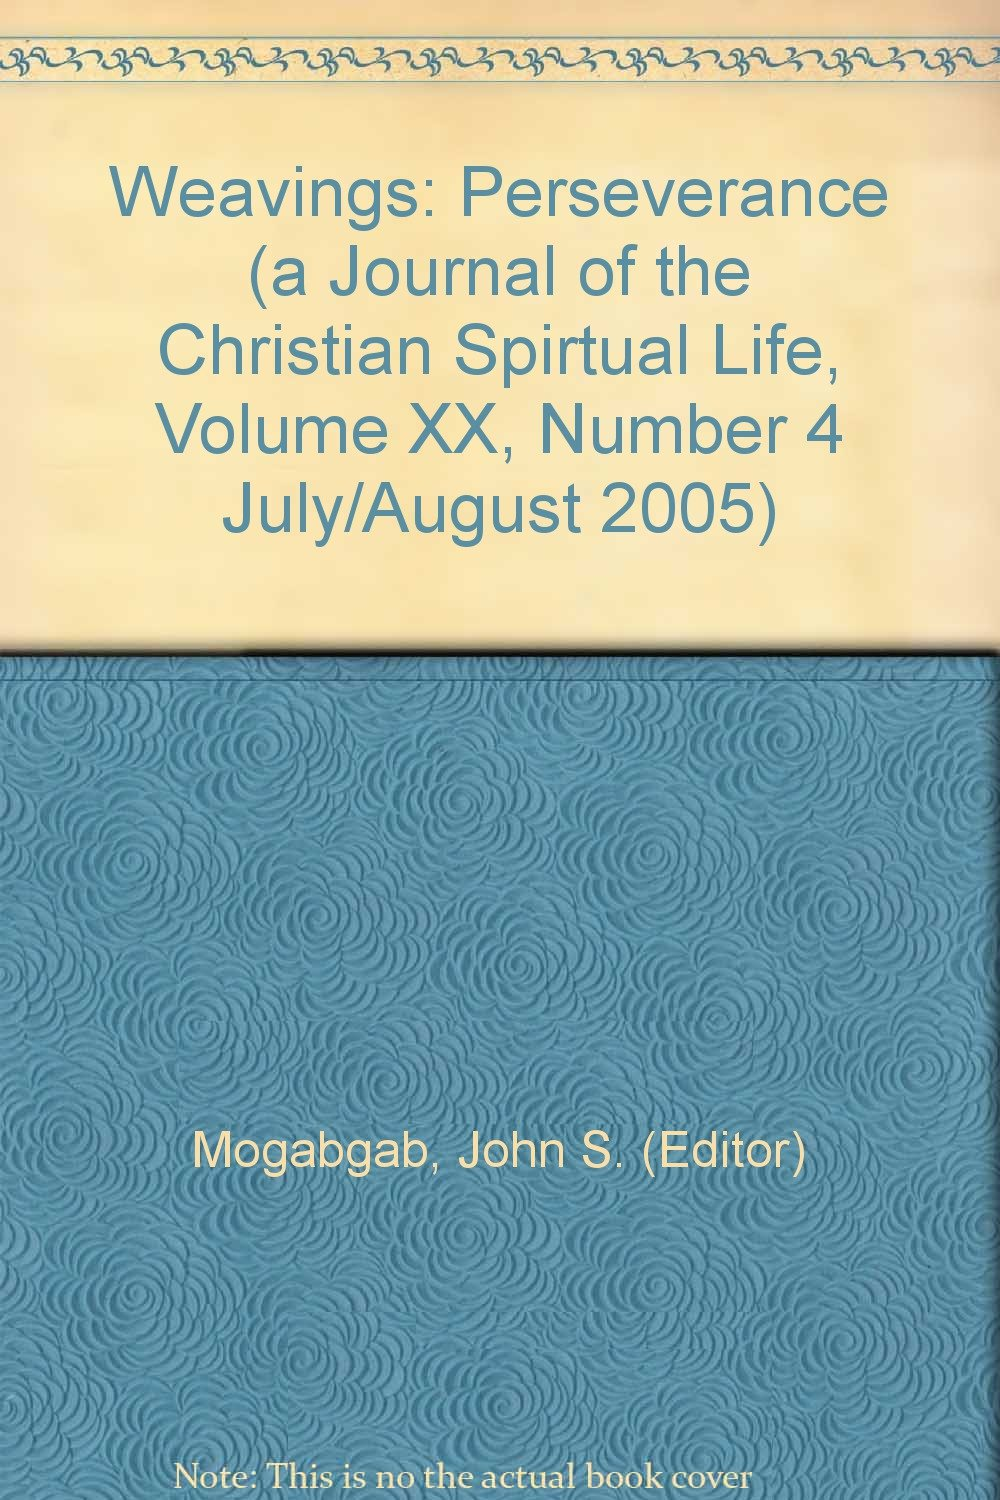 Weavings: Perseverance (a Journal of the Christian Spirtual Life, Volume XX, Number 4 July/August 2005)